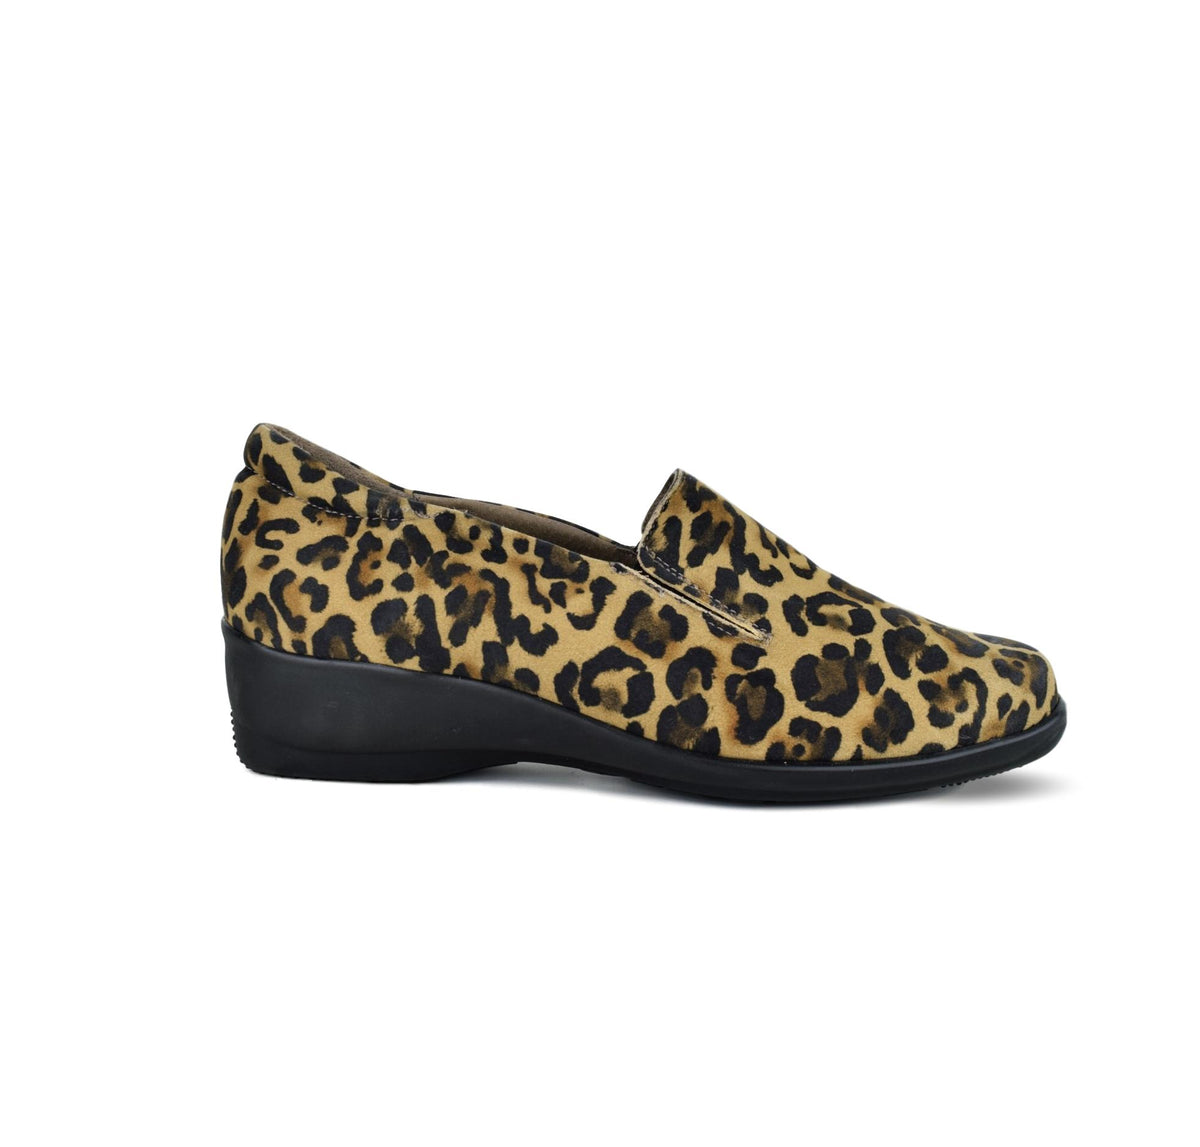 KELLY - Spiffy Closed Shoes Leopard